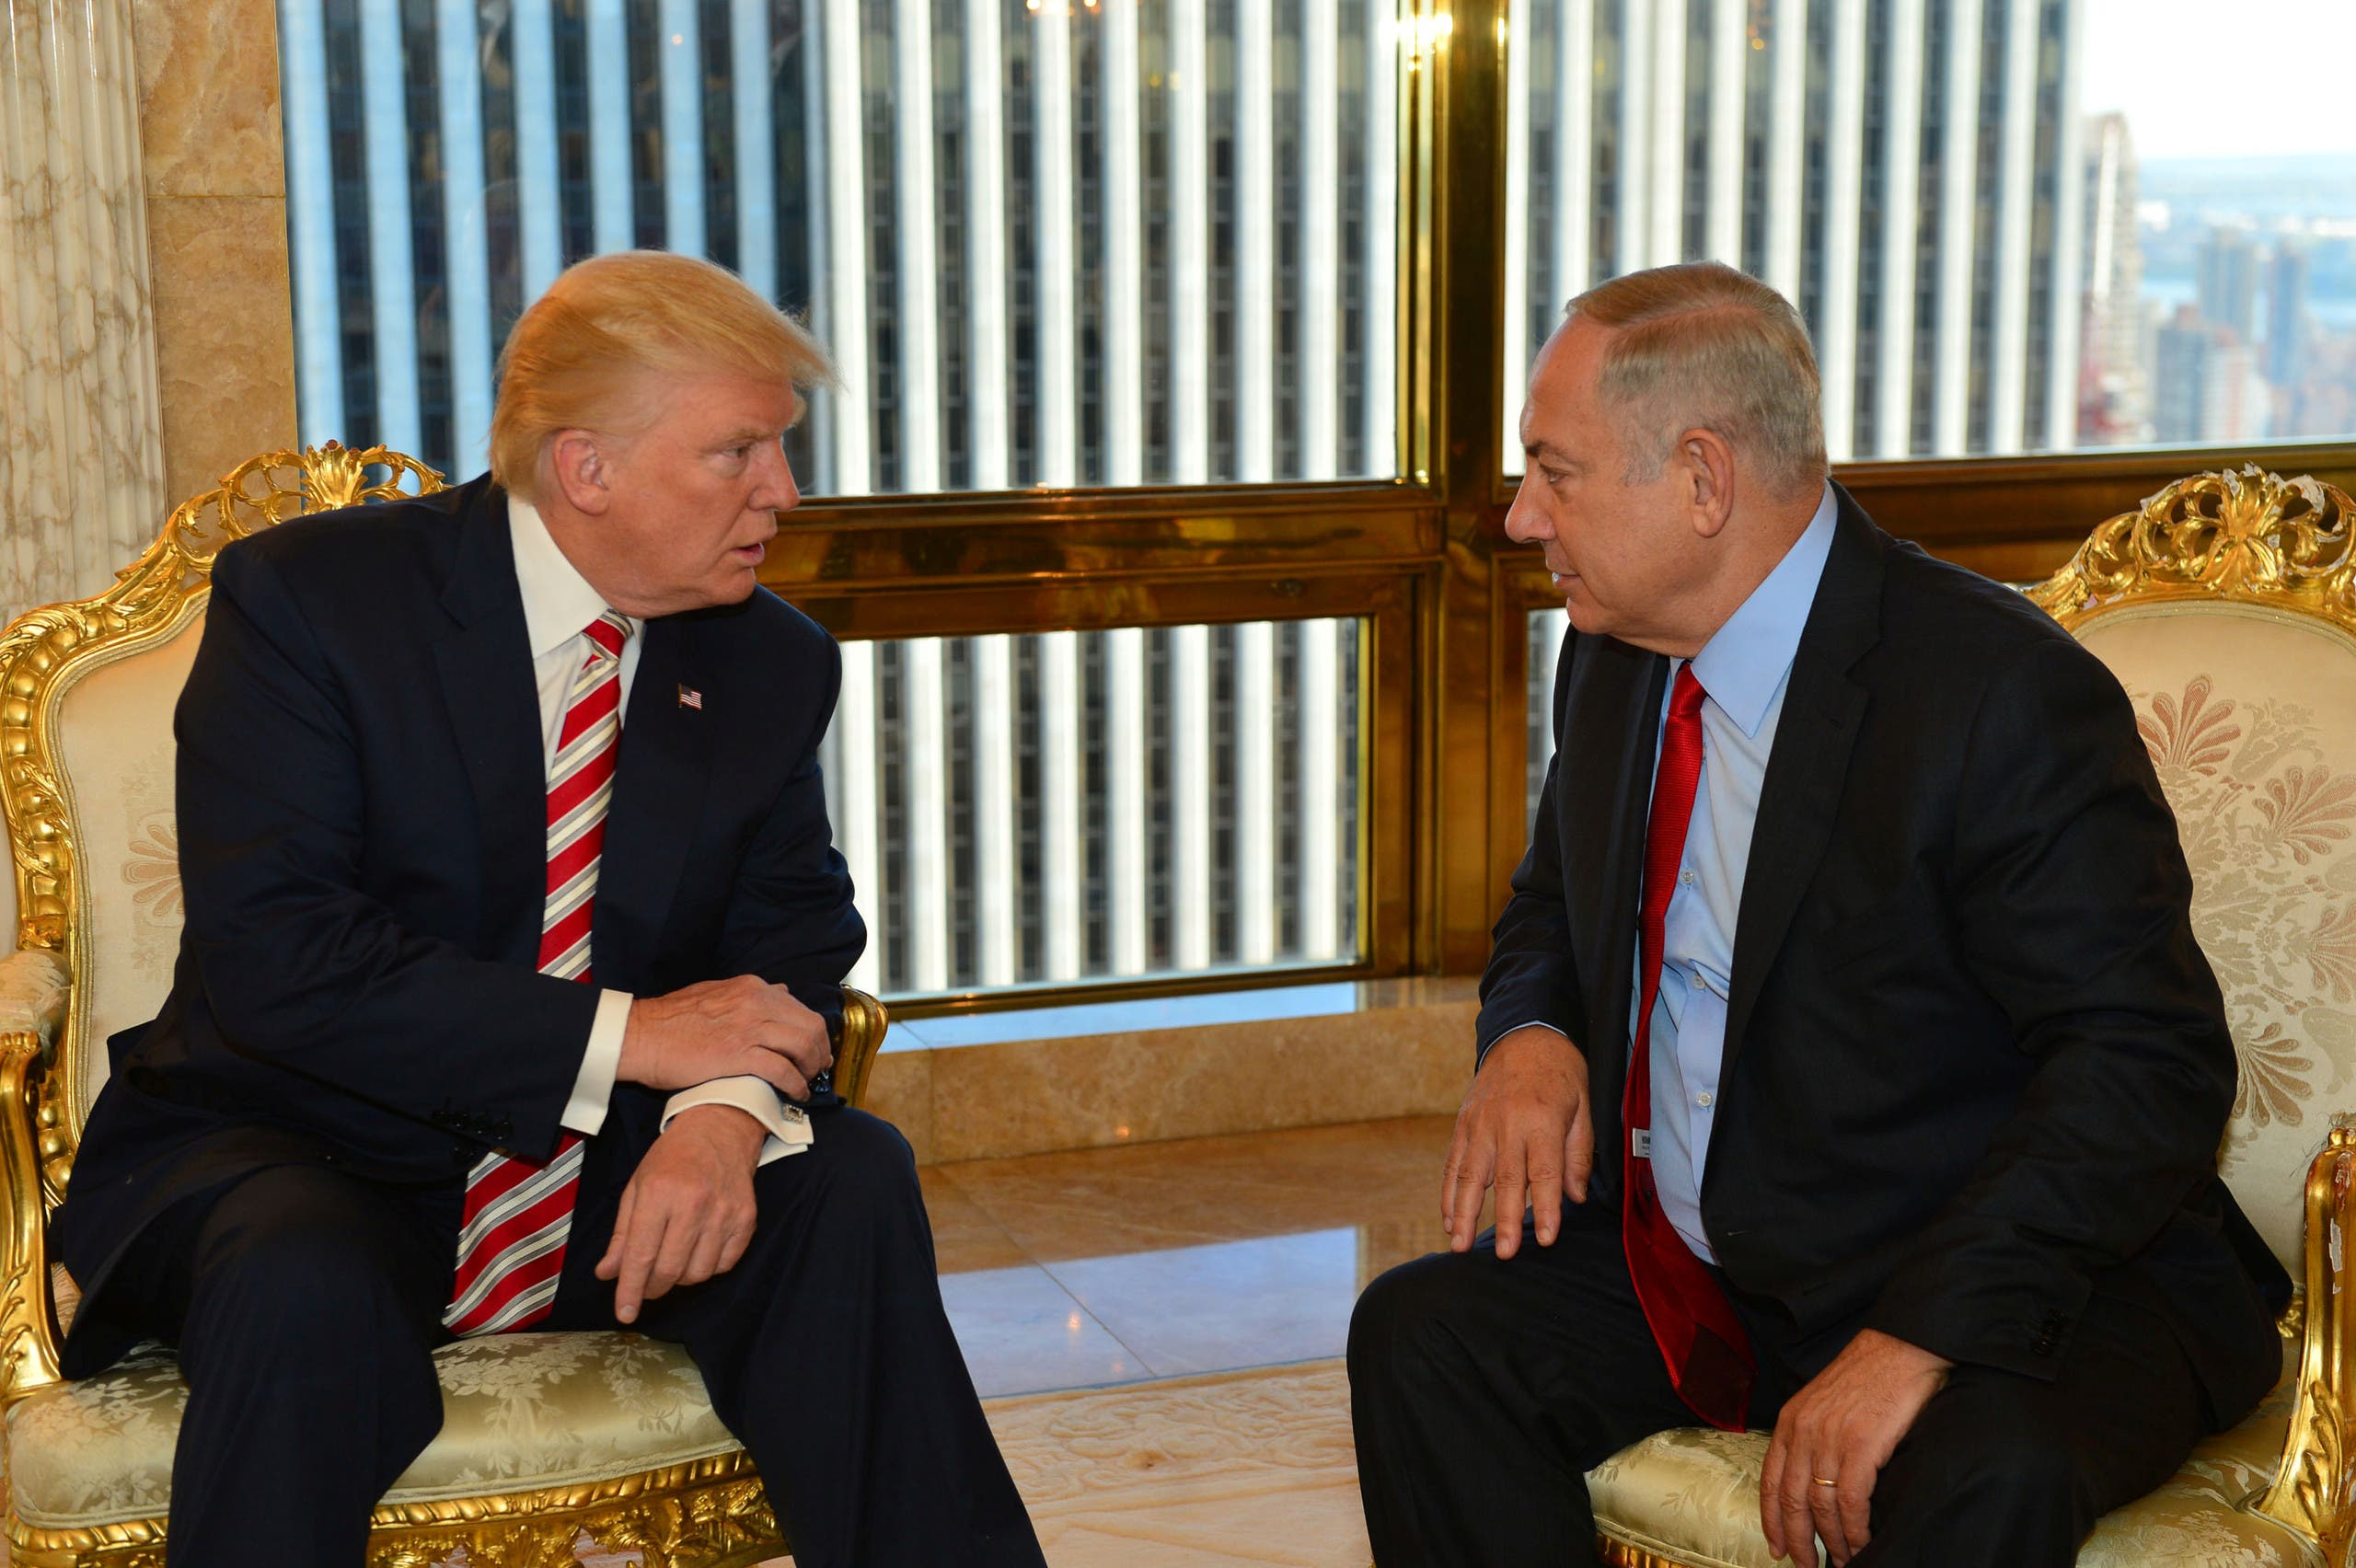 Israel asked President-elect Donald Trump to apply pressure to avert United Nations approval of a resolution demanding an end to settlement building, an official said. (AFP)